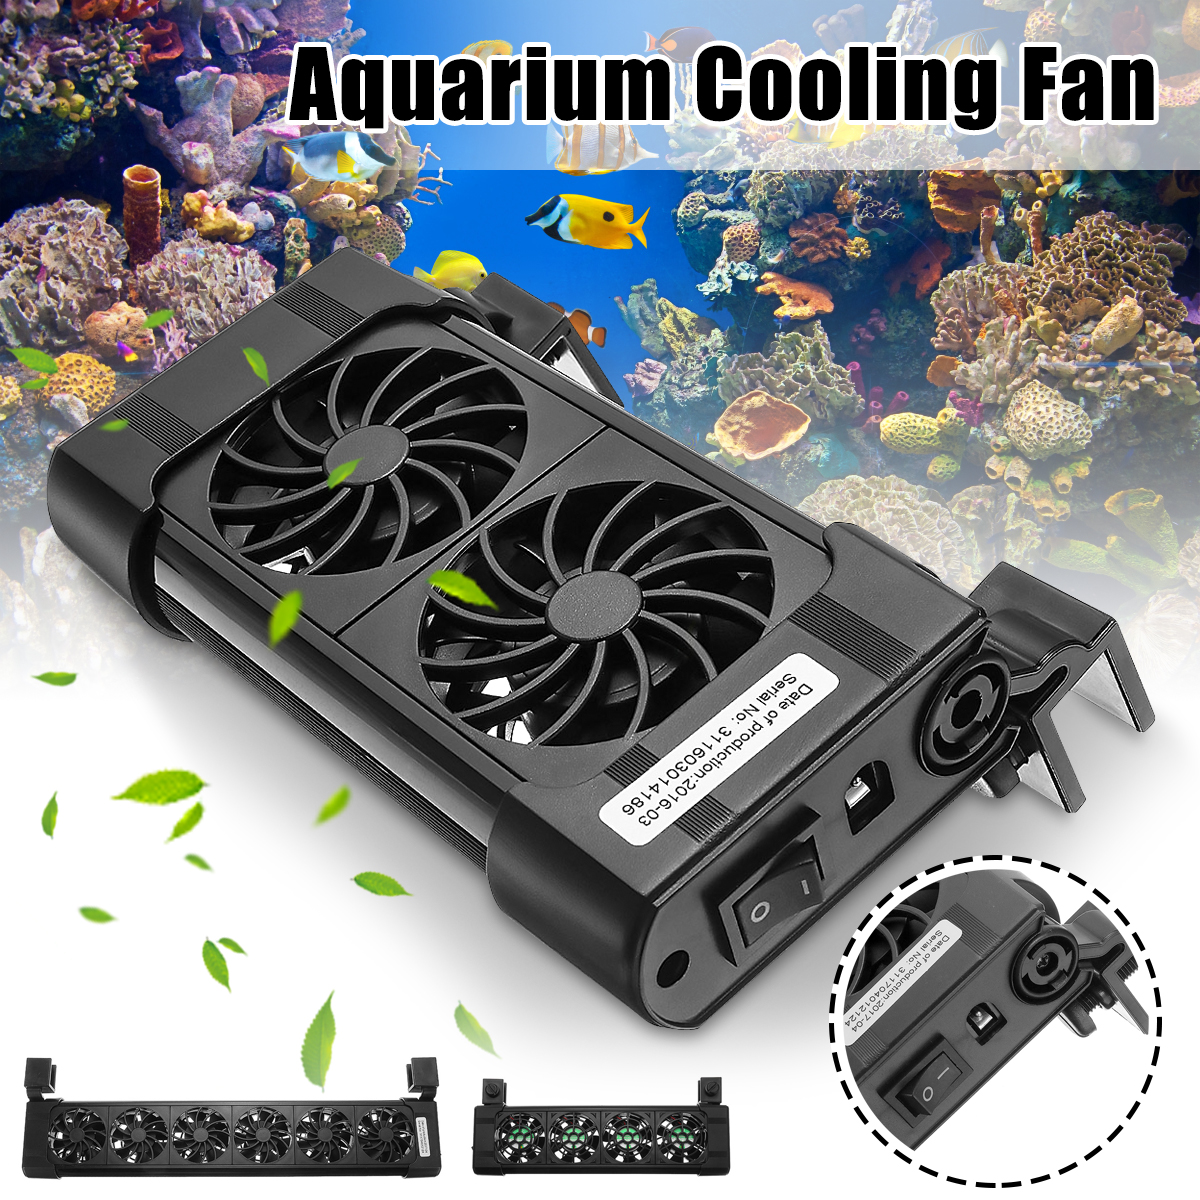 2/3/4/5/6 Heads Fan Black Aquarium Fish Tank Cooling Fans Cold Wind Chiller Adjustable Water Cooler Temperature Control Products2/3/4/5/6 Heads Fan Black Aquarium Fish Tank Cooling Fans Cold Wind Chiller Adjustable Water Cooler Temperature Control Products